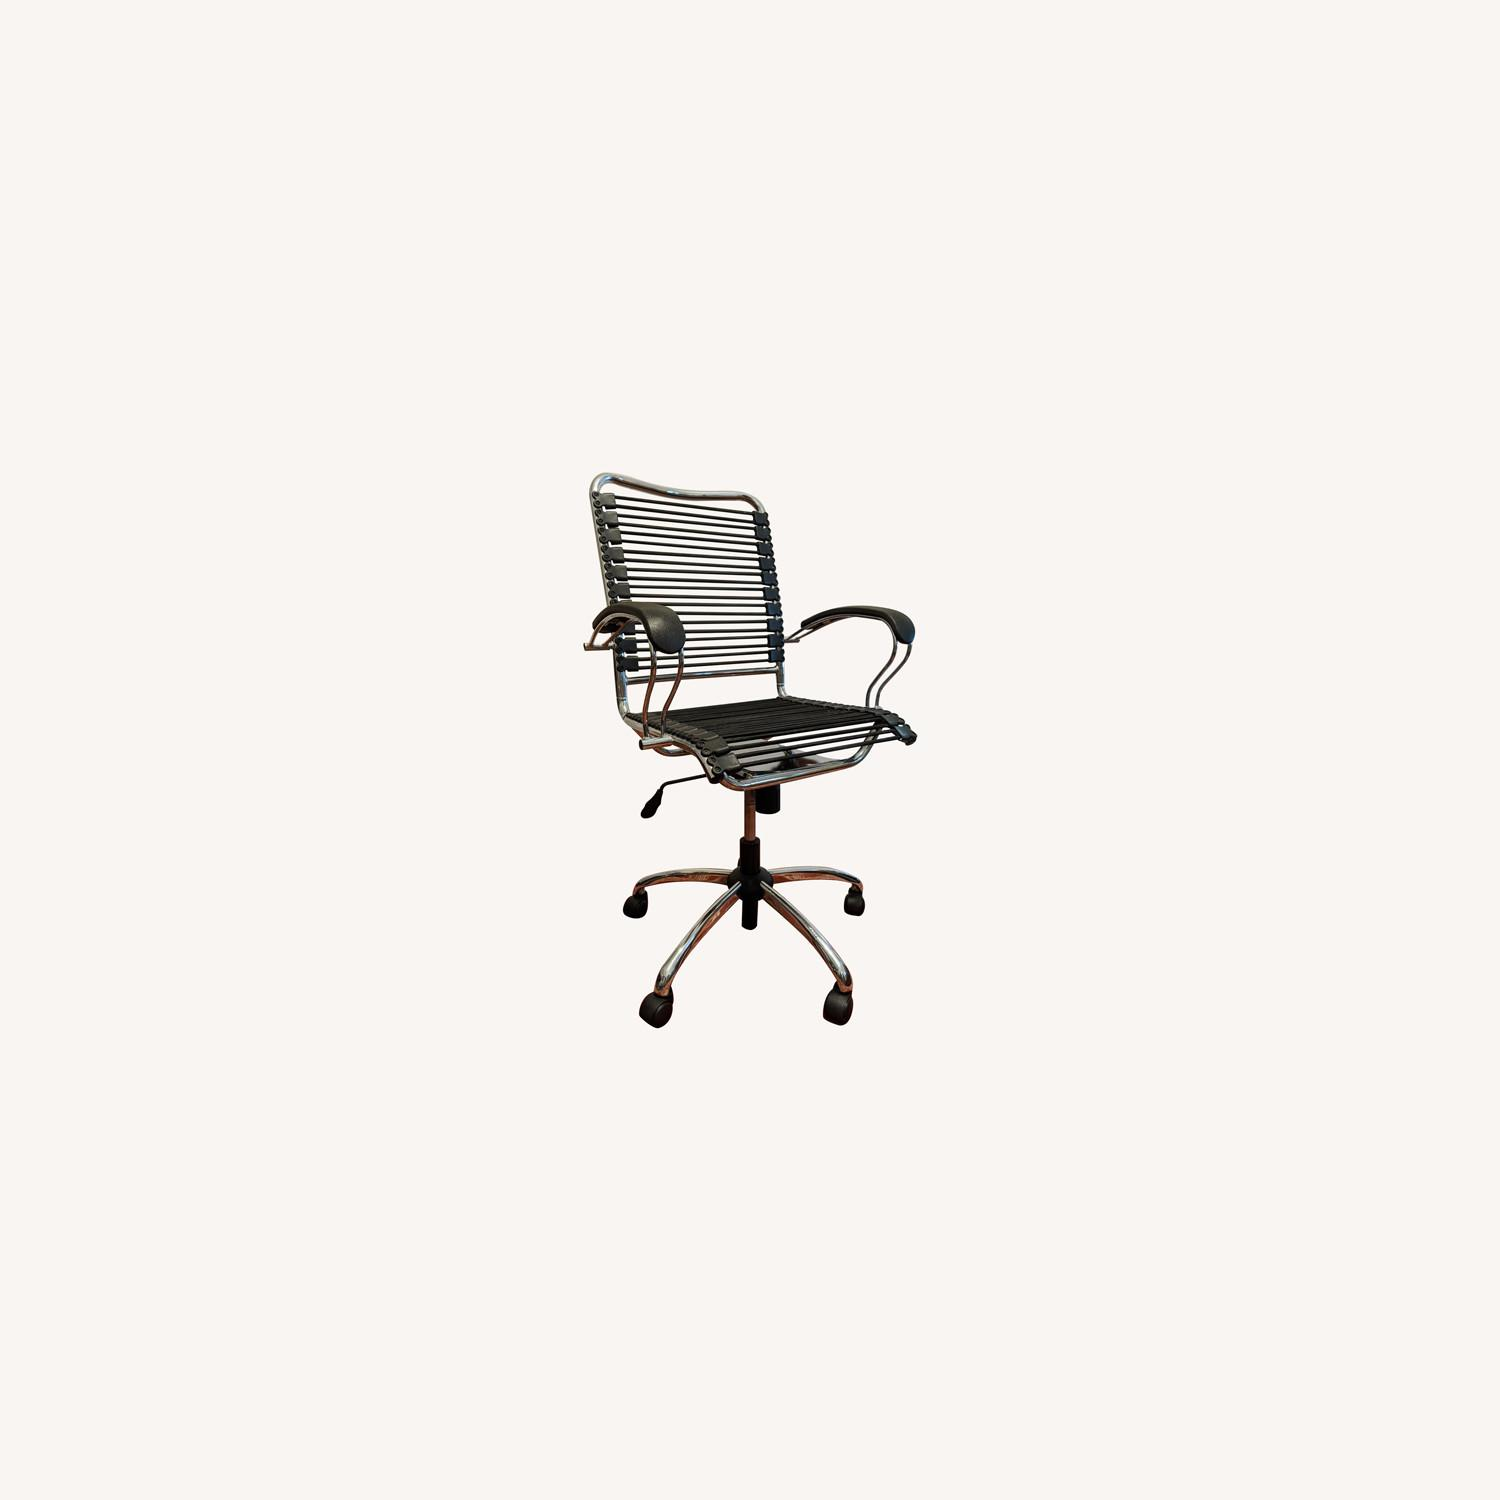 Modern Bungee Desk Chairs with Chrome Accents - image-0